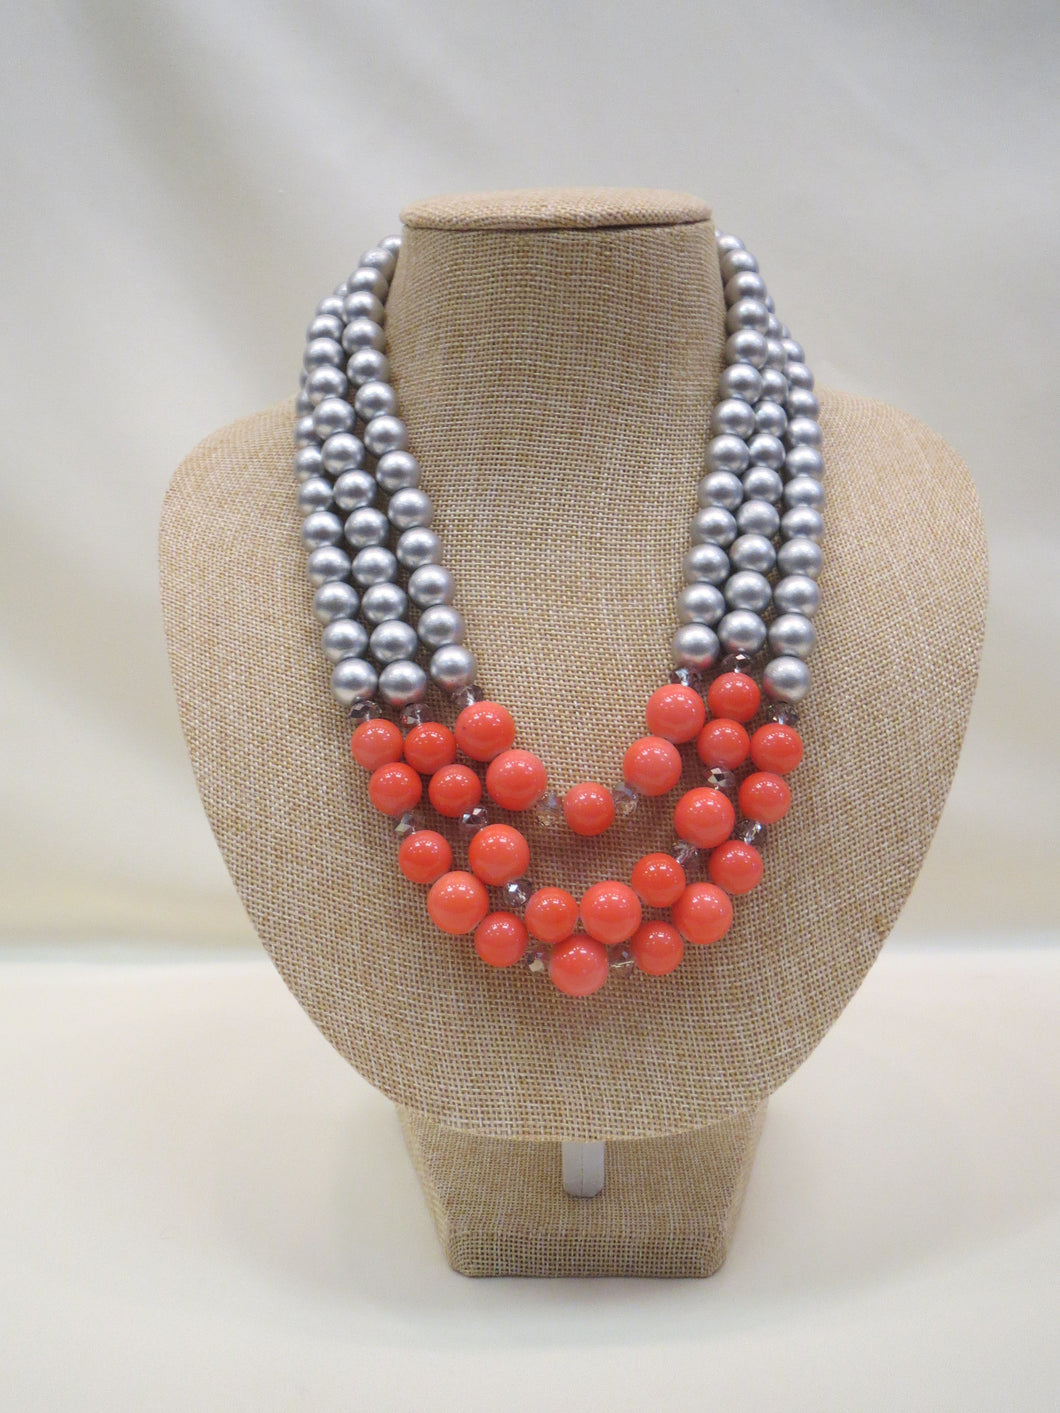 ADO | 3 Strand Coral & Silver Necklace - All Decd Out